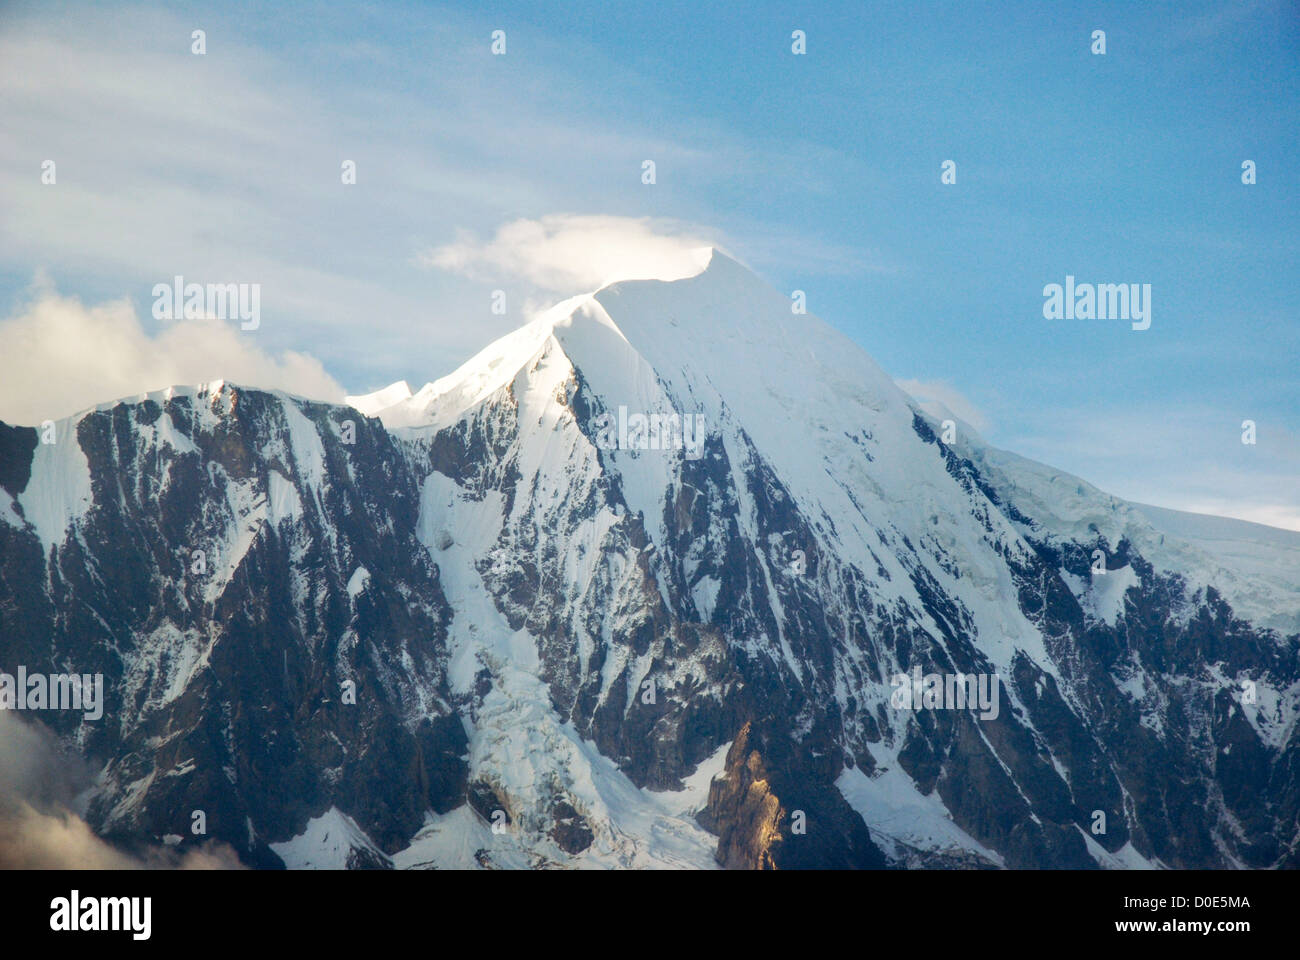 Aerial view of the mountain Illimani, Bolivia Stock Photo